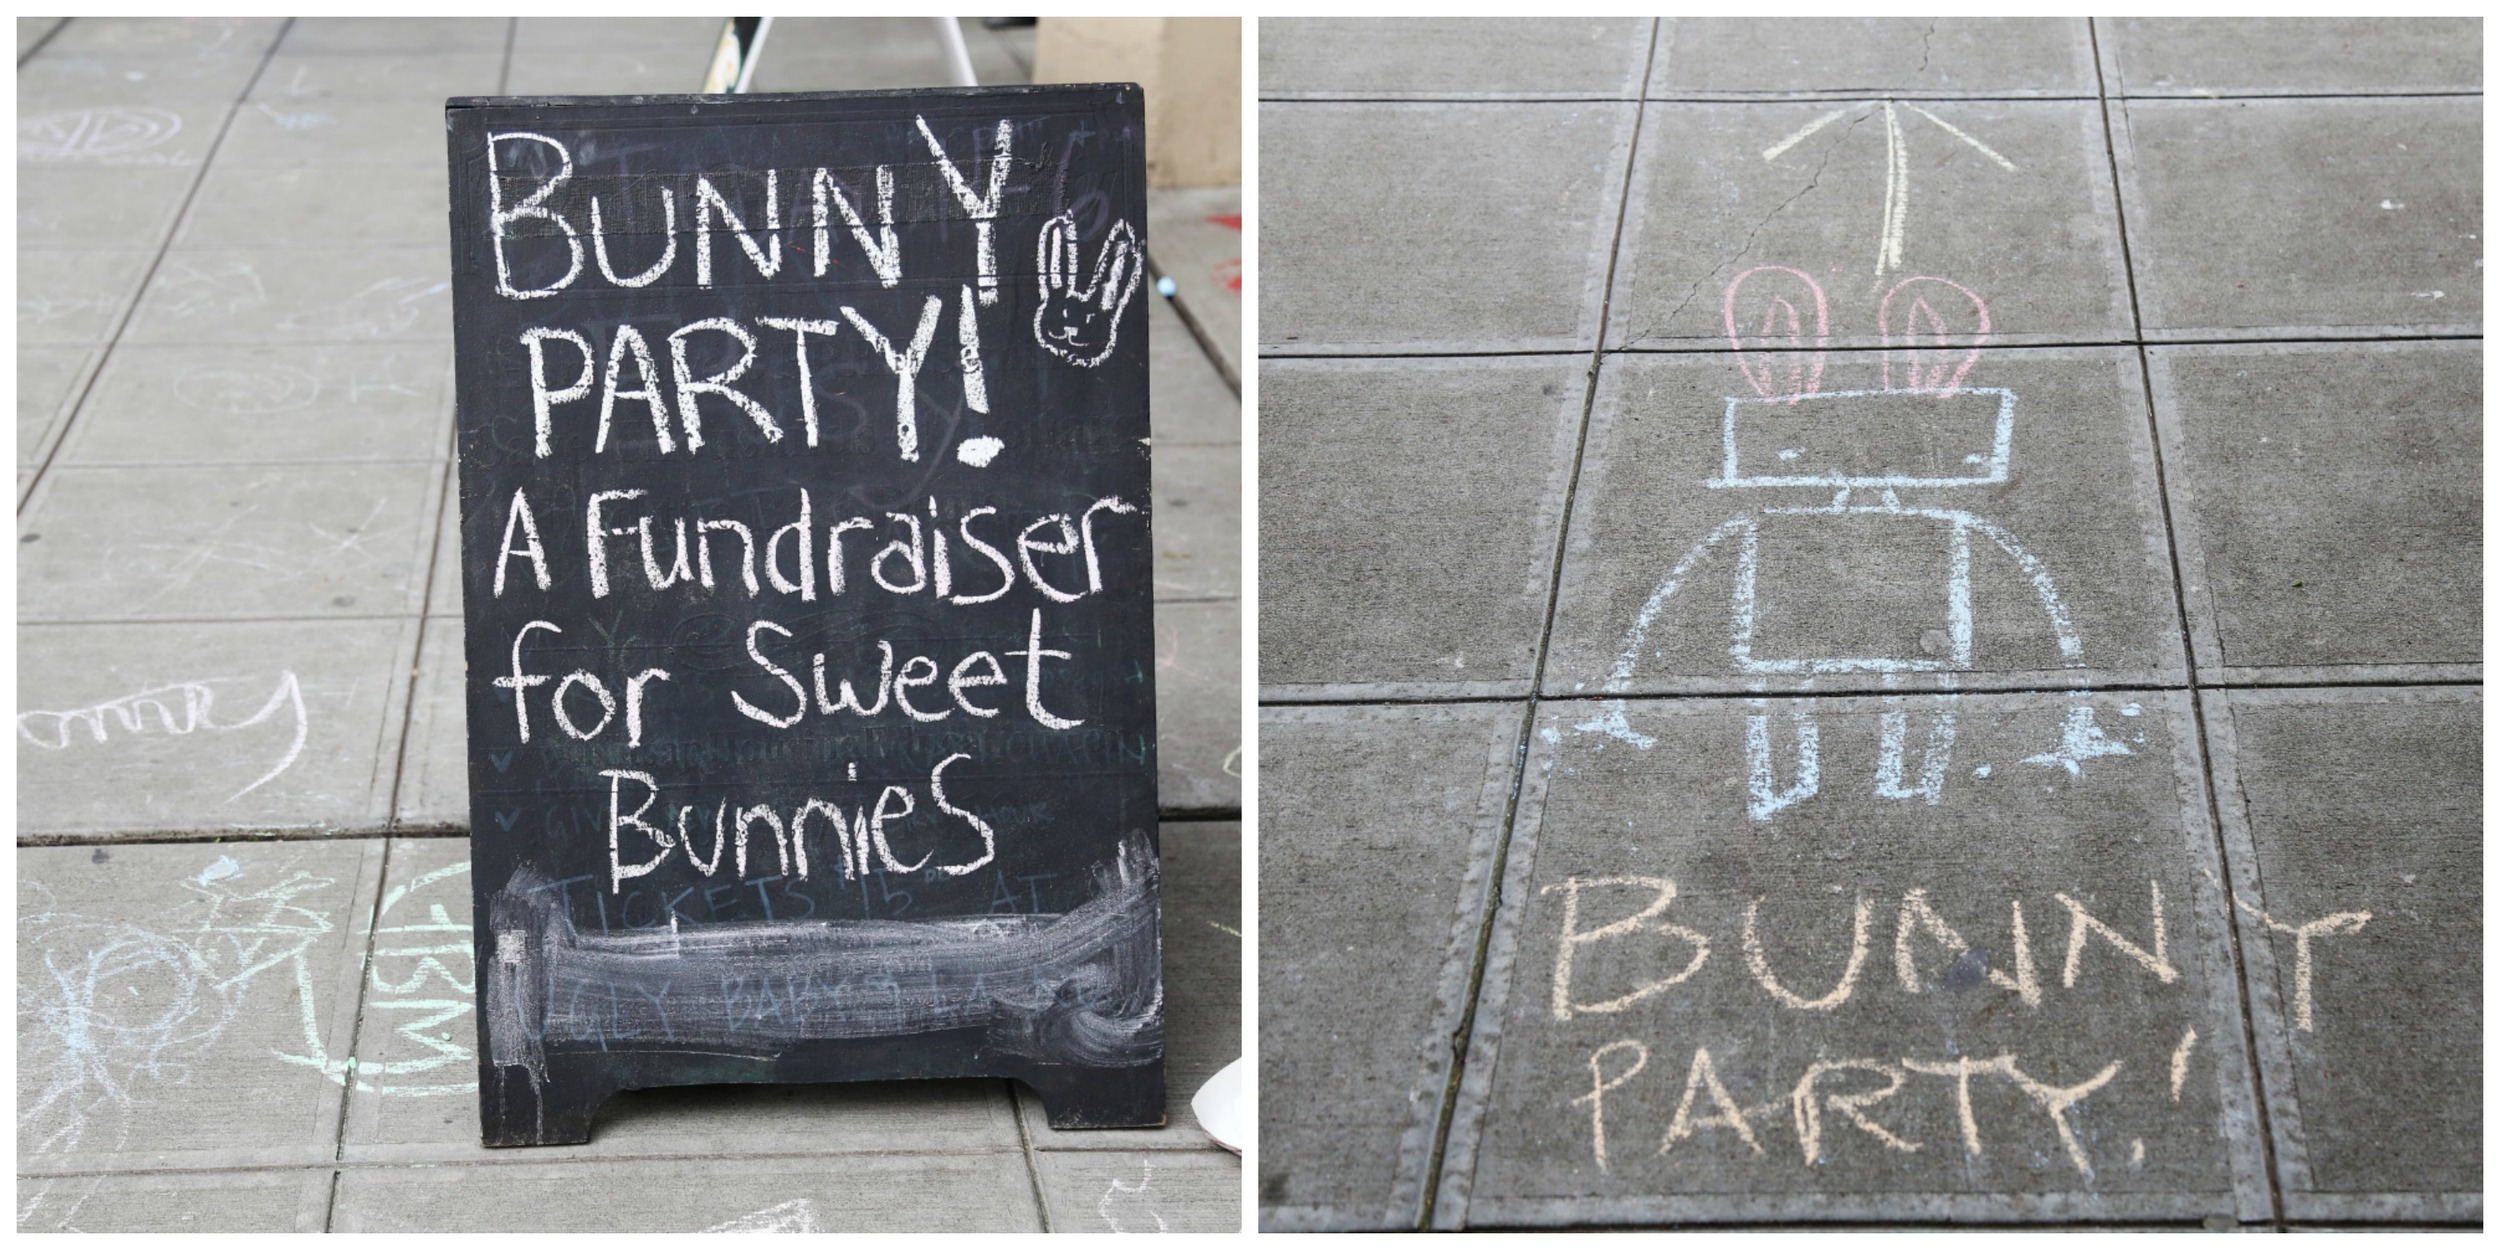 Who doesn't want to go to a bunny party?